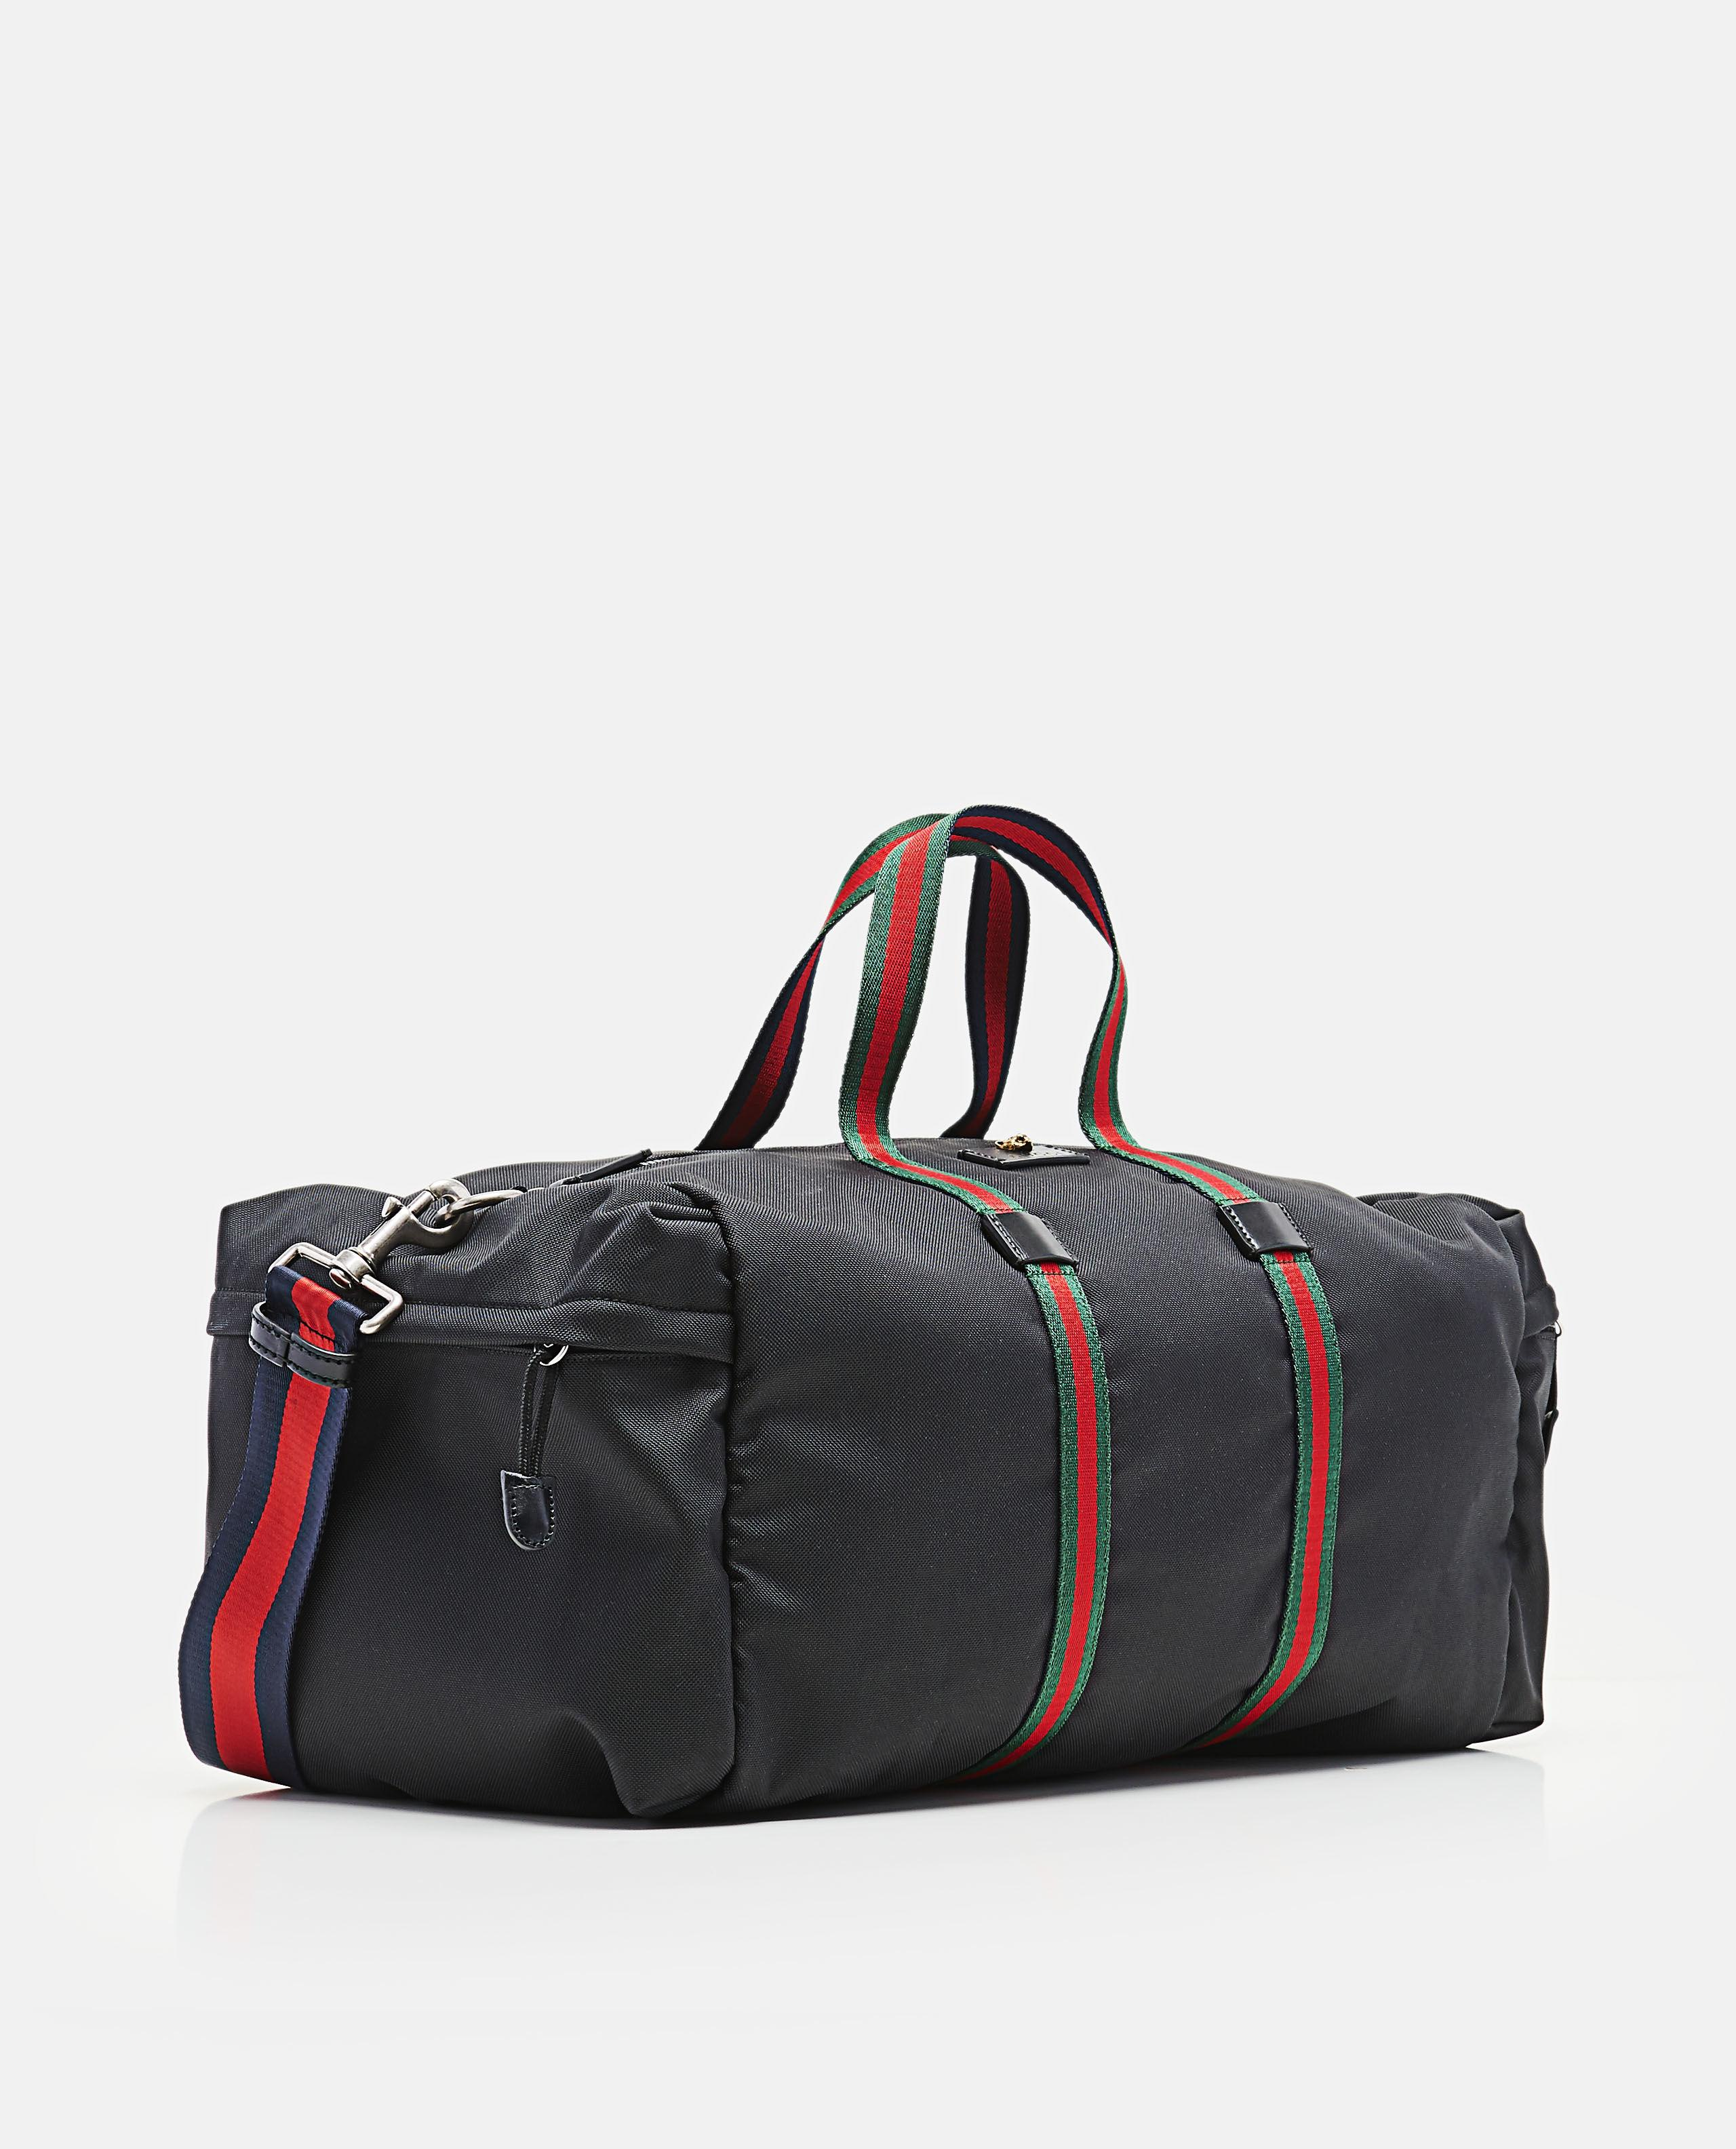 aafd5022cdbd Gucci Technical Canvas Duffle in Black for Men - Lyst